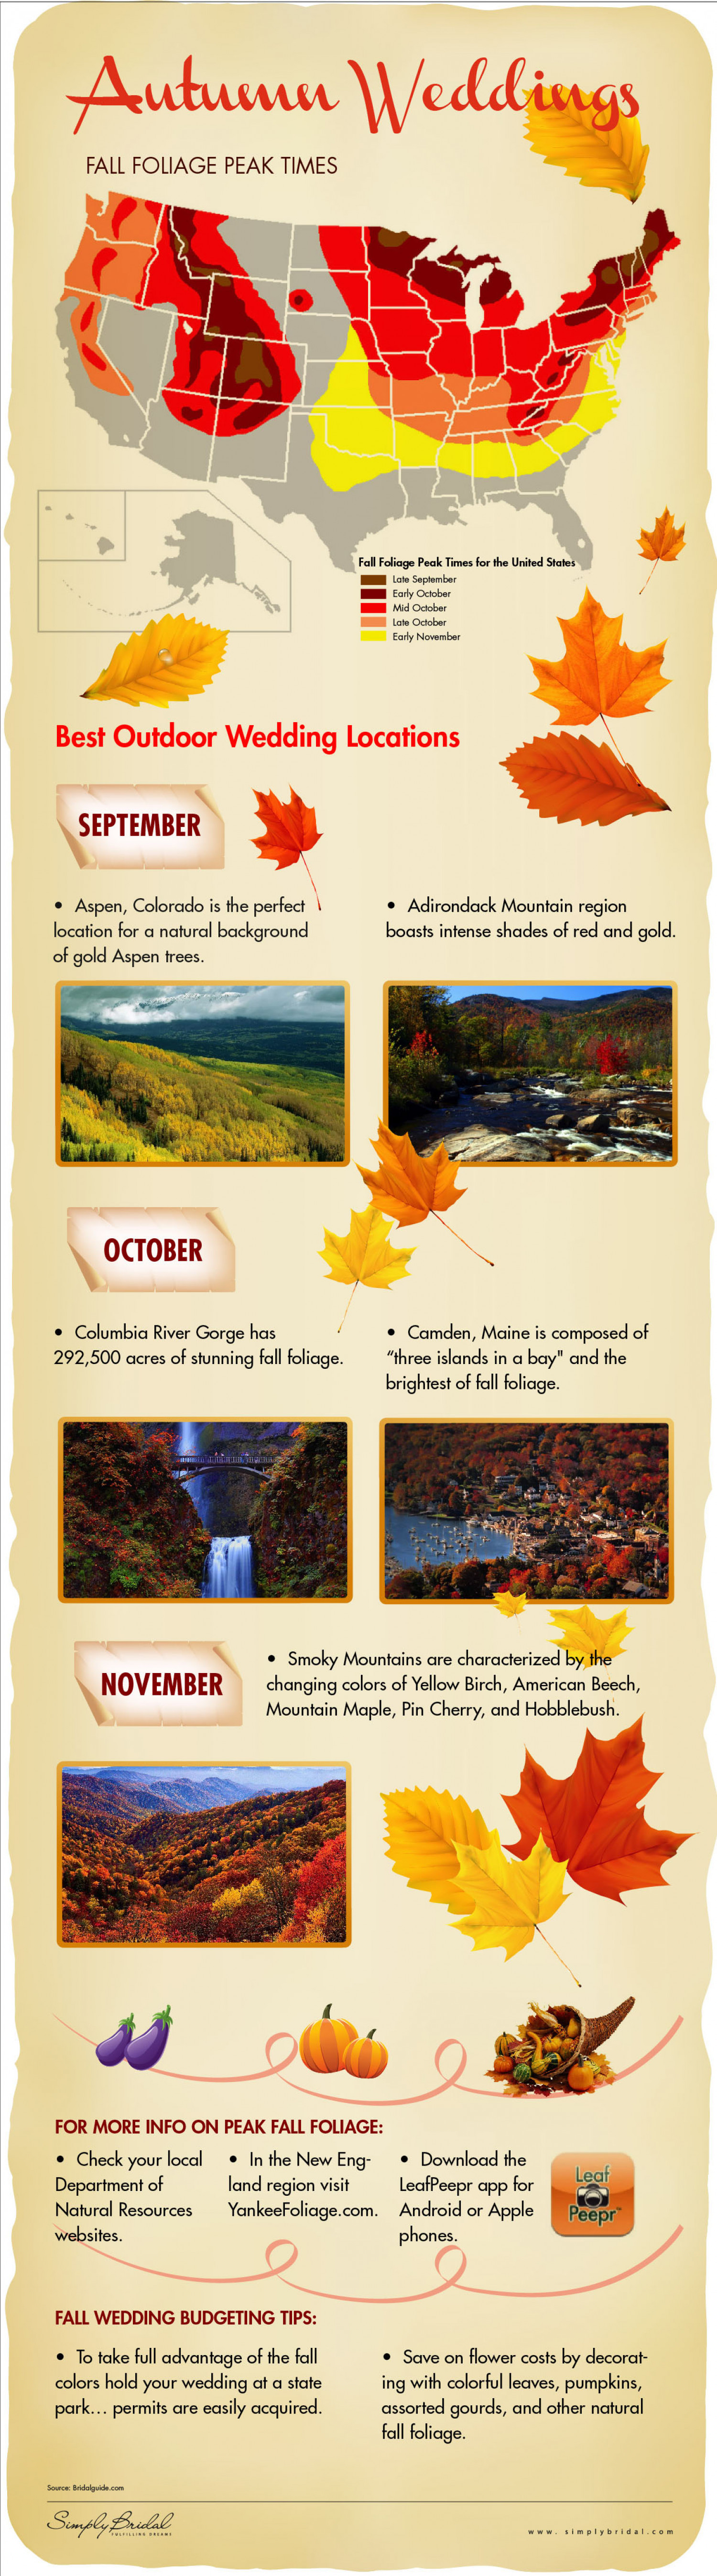 Autumn Wedding Locations Infographic